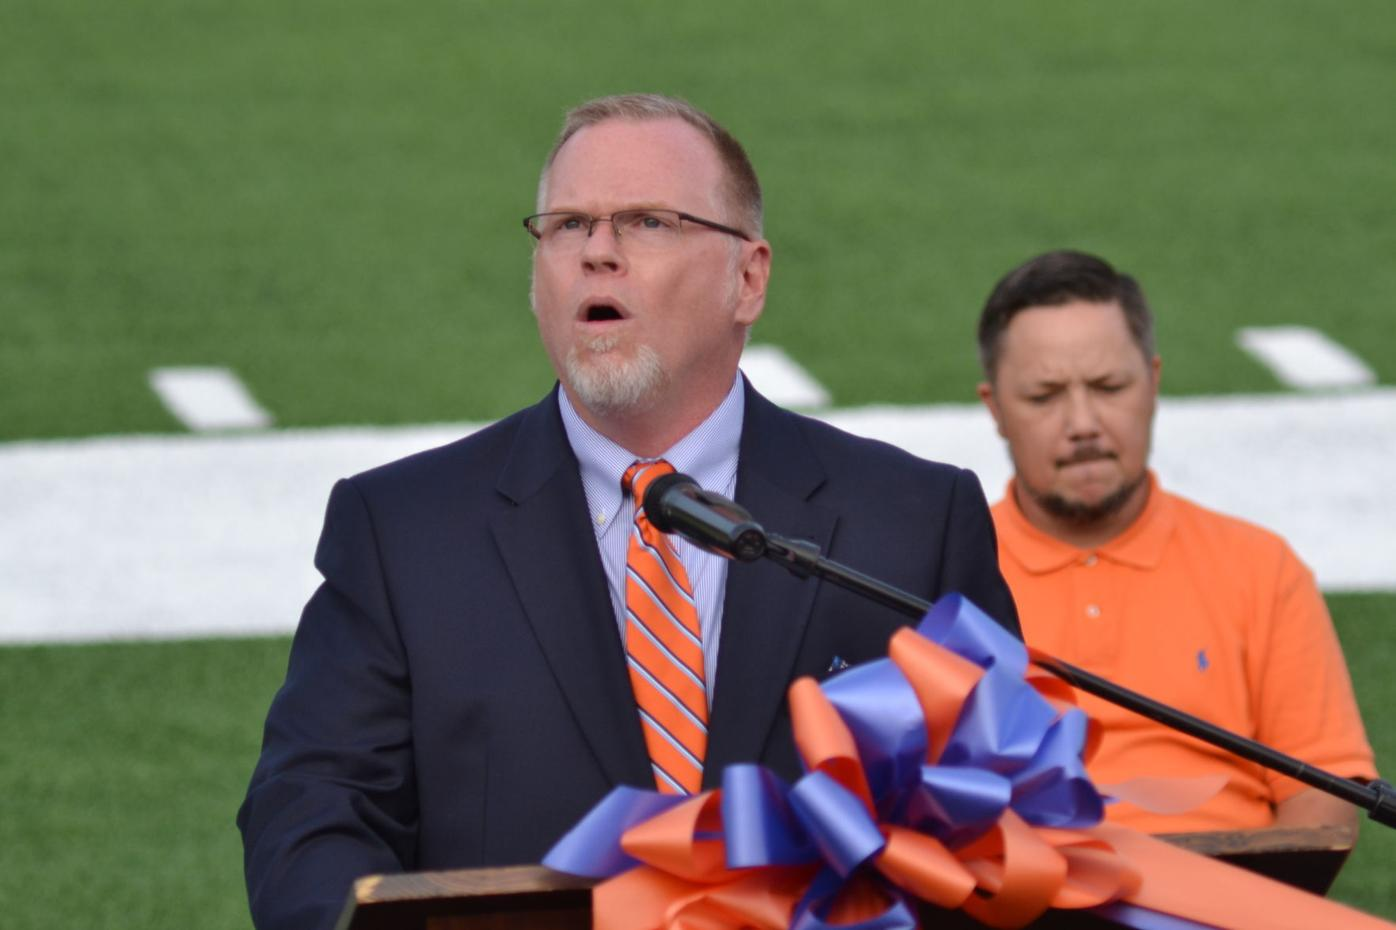 Volunteer officials celebrate new turf field with ribbon cutting